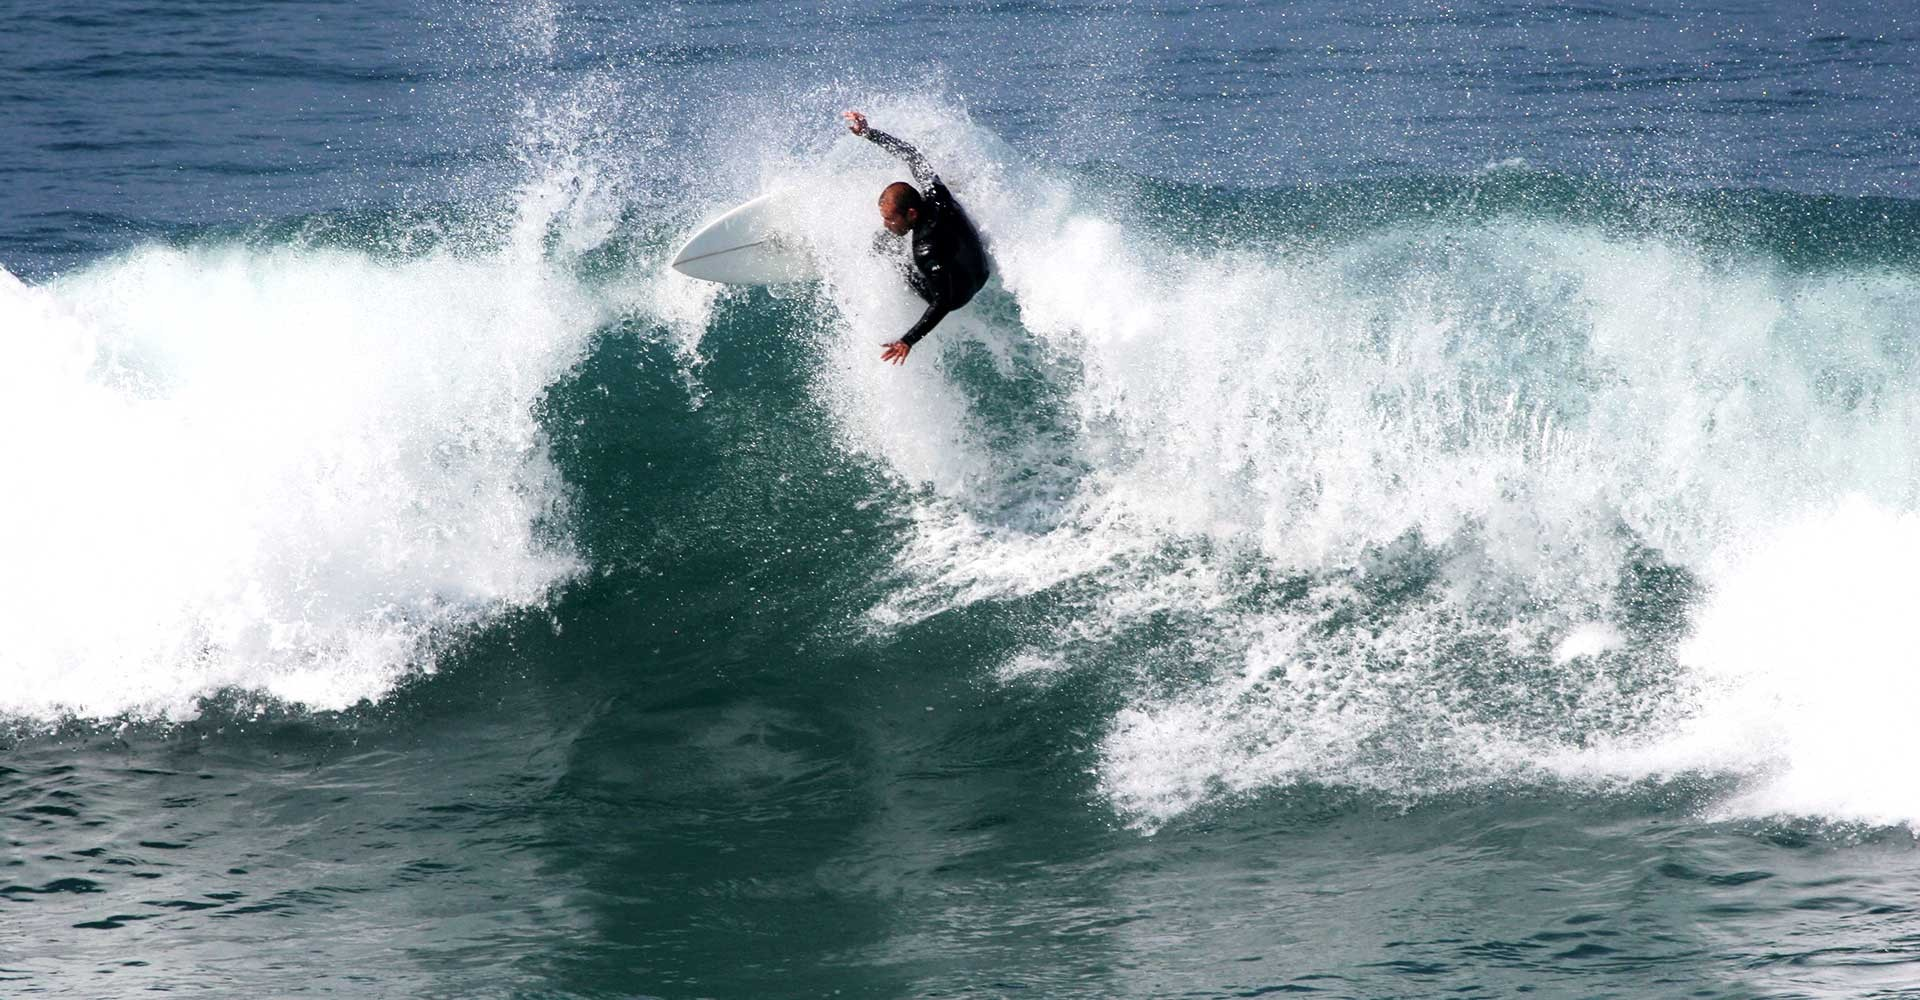 ricardo-pires, tiago-pires, micasurfboards, ericeira, surfing, surfboard, shaping, team, peniche